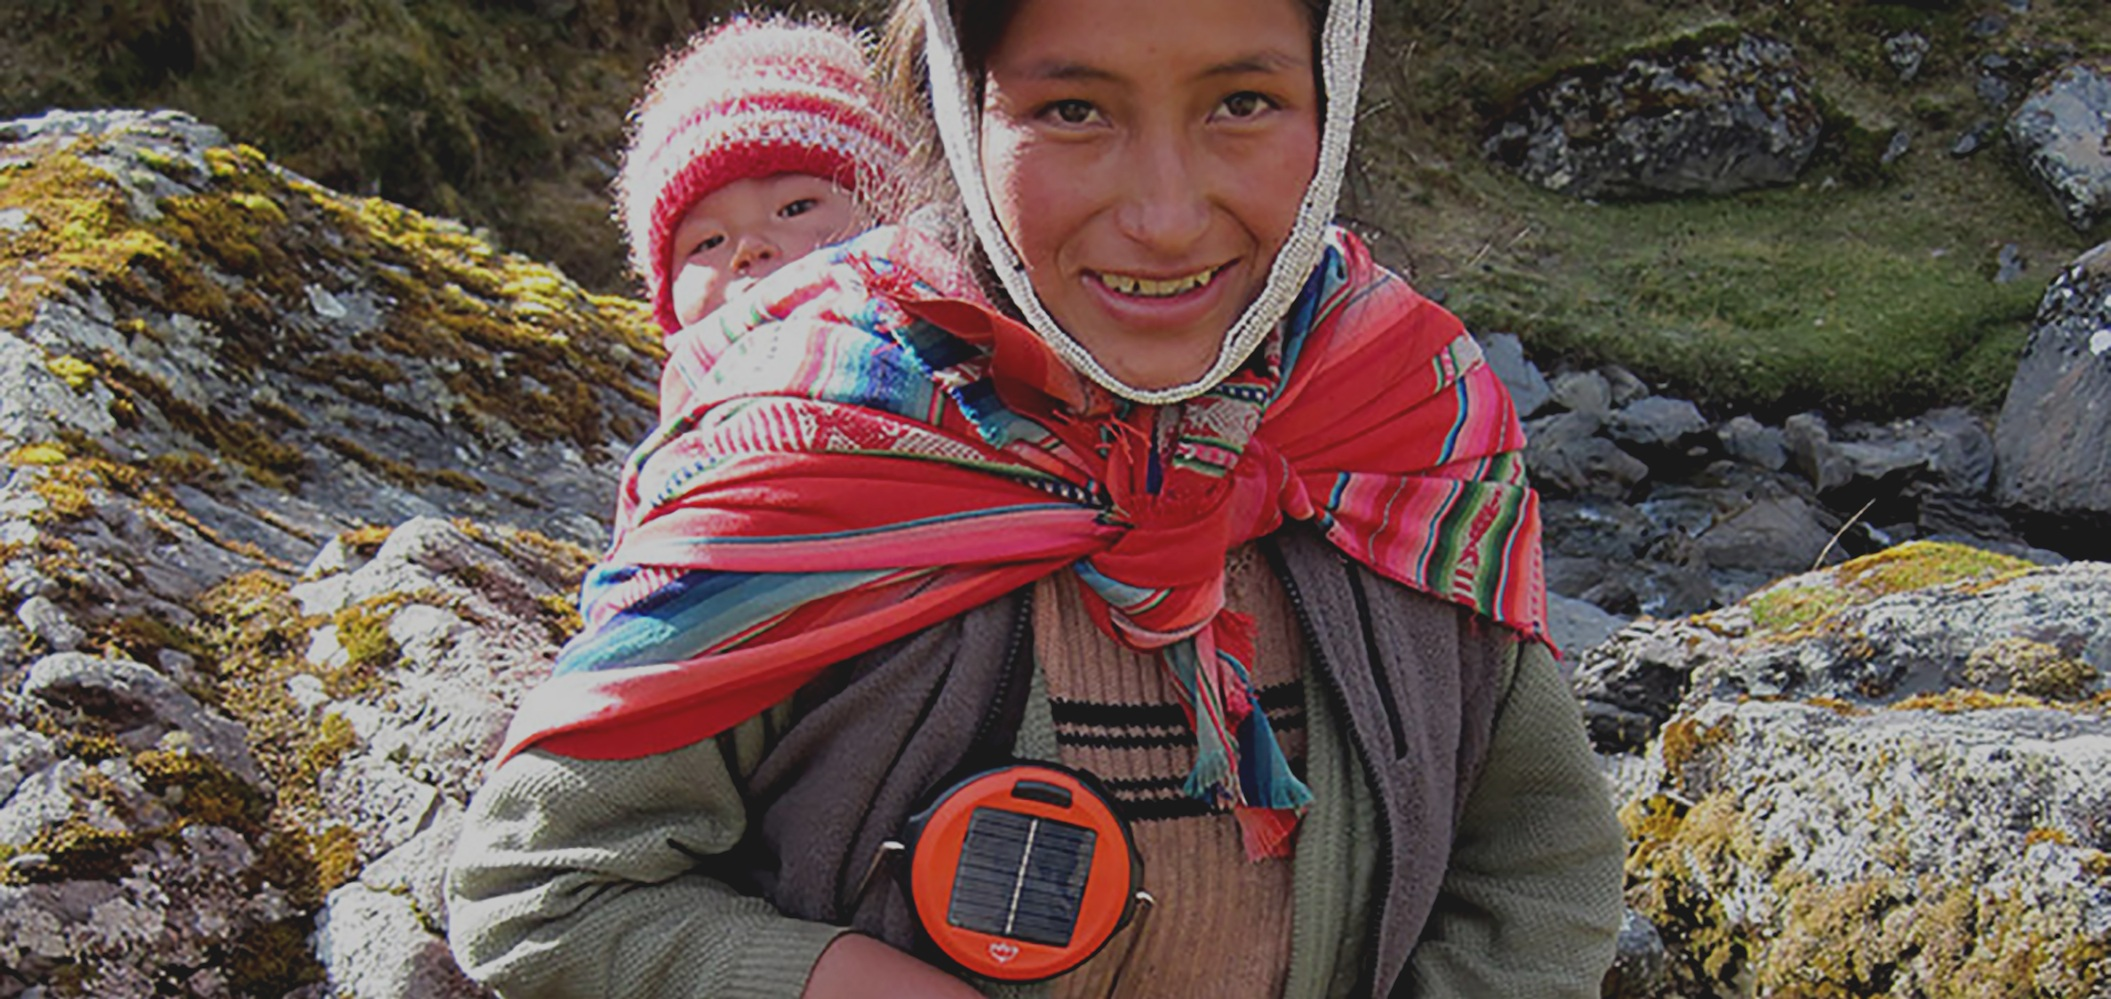 S2 : Low Cost Solar Lamp - How might we enable low-income families to have sustainable light source?